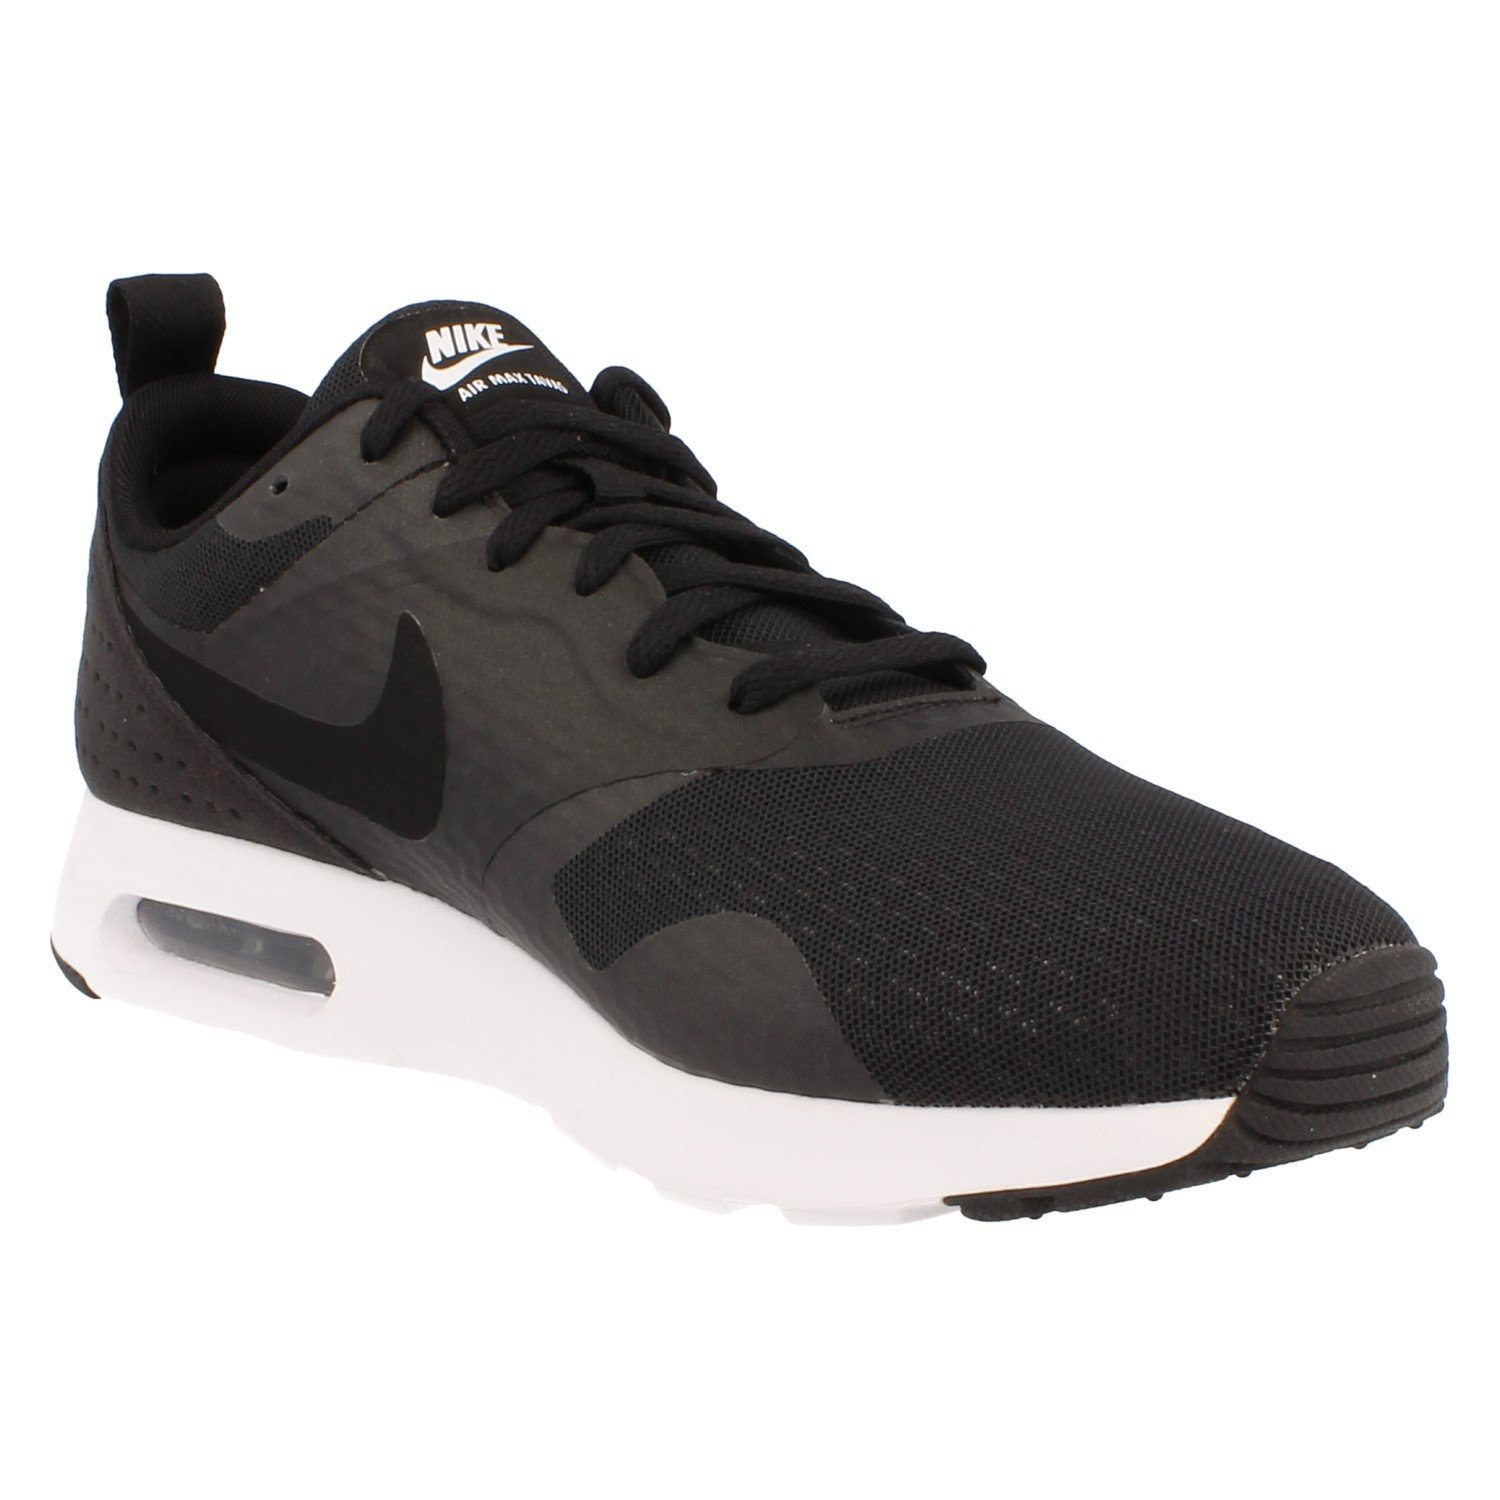 detailed look e76e3 158df Nike AIR MAX Tavas Essential 725073 001 Black Black-White  Buy Online at  Low Prices in India - Amazon.in